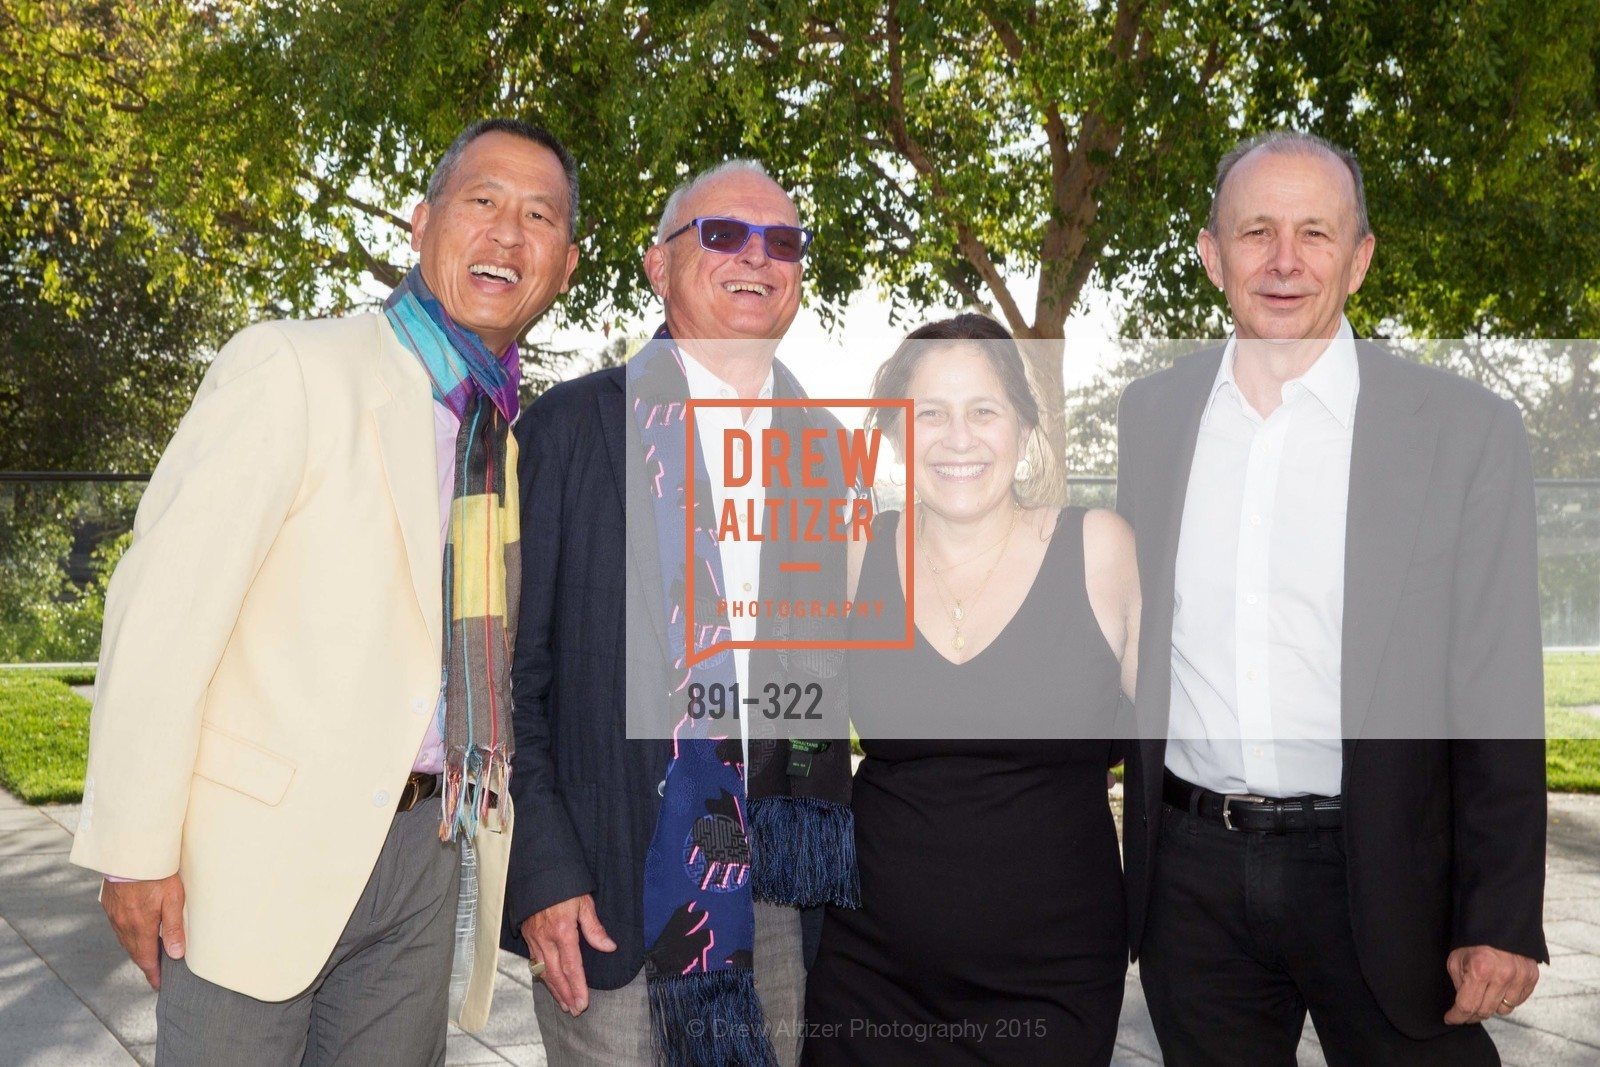 Darrell Louie, Paul Templeton, Michelle Owen, Stewart Owen, Gala at The Greek Benefiting Cal Performances, UC Berkeley's Greek Theatre. 2001 Gayley Rd, September 25th, 2015,Drew Altizer, Drew Altizer Photography, full-service agency, private events, San Francisco photographer, photographer california